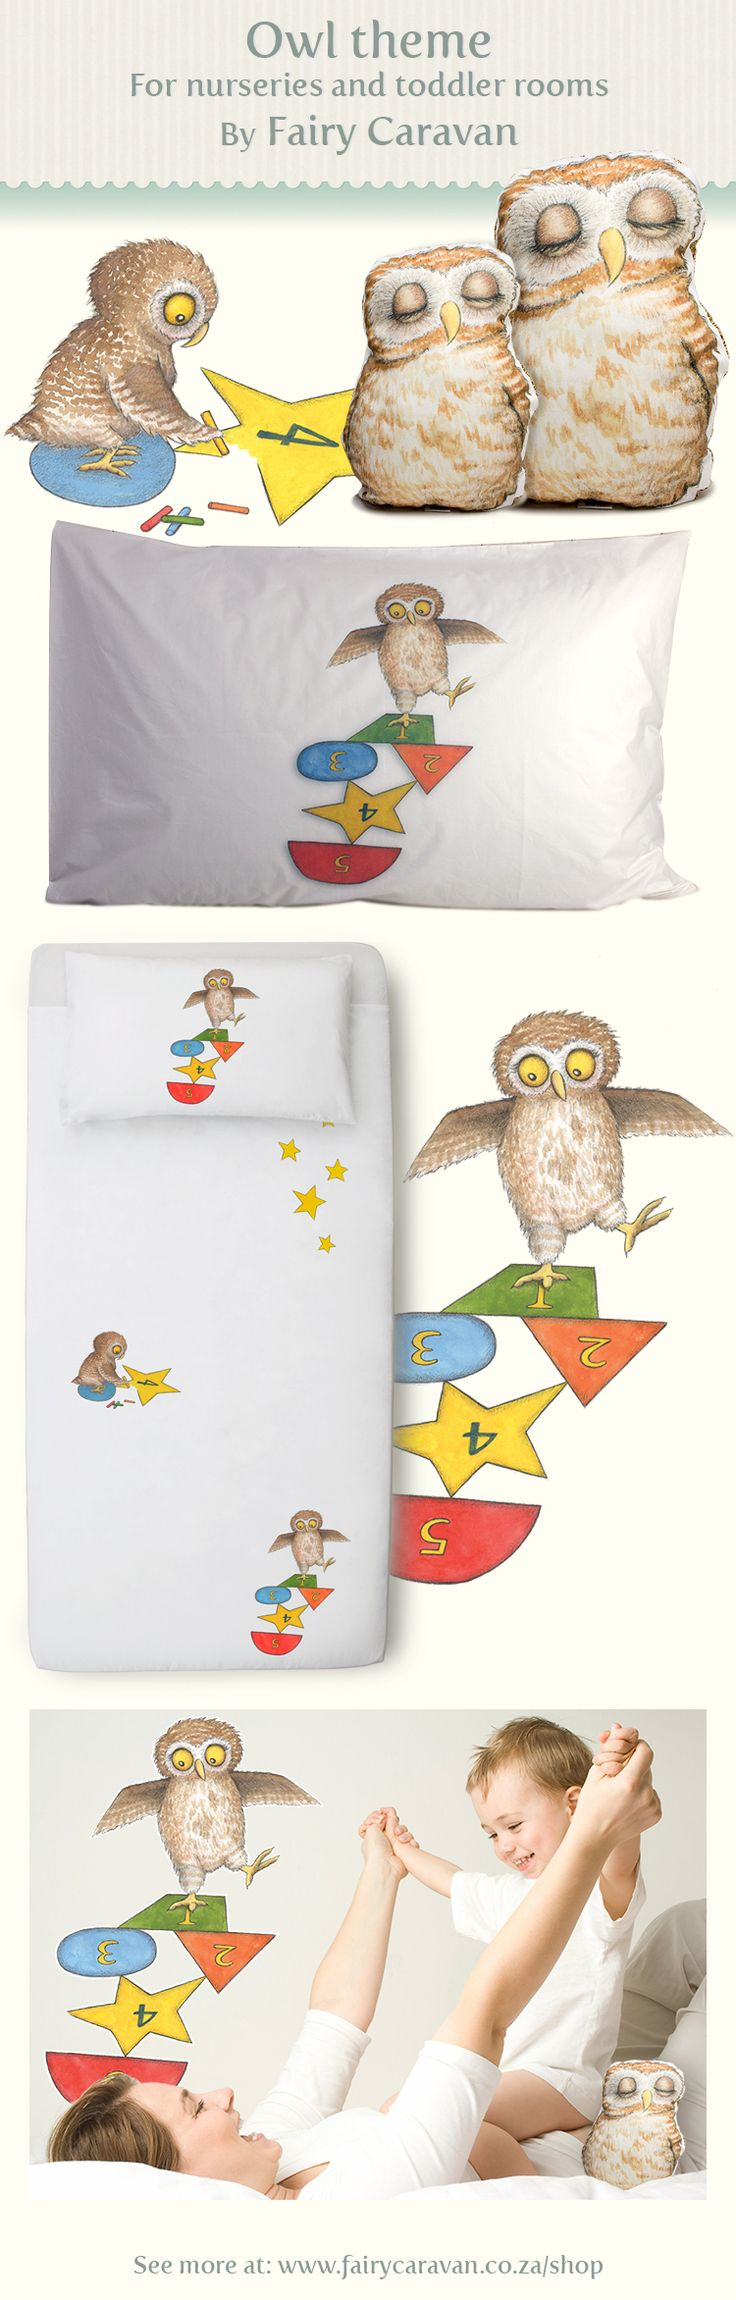 Some inspiration for creating your child's storybook room: Here are some Little Owl toddler room ideas to create an owl room for your special little person.